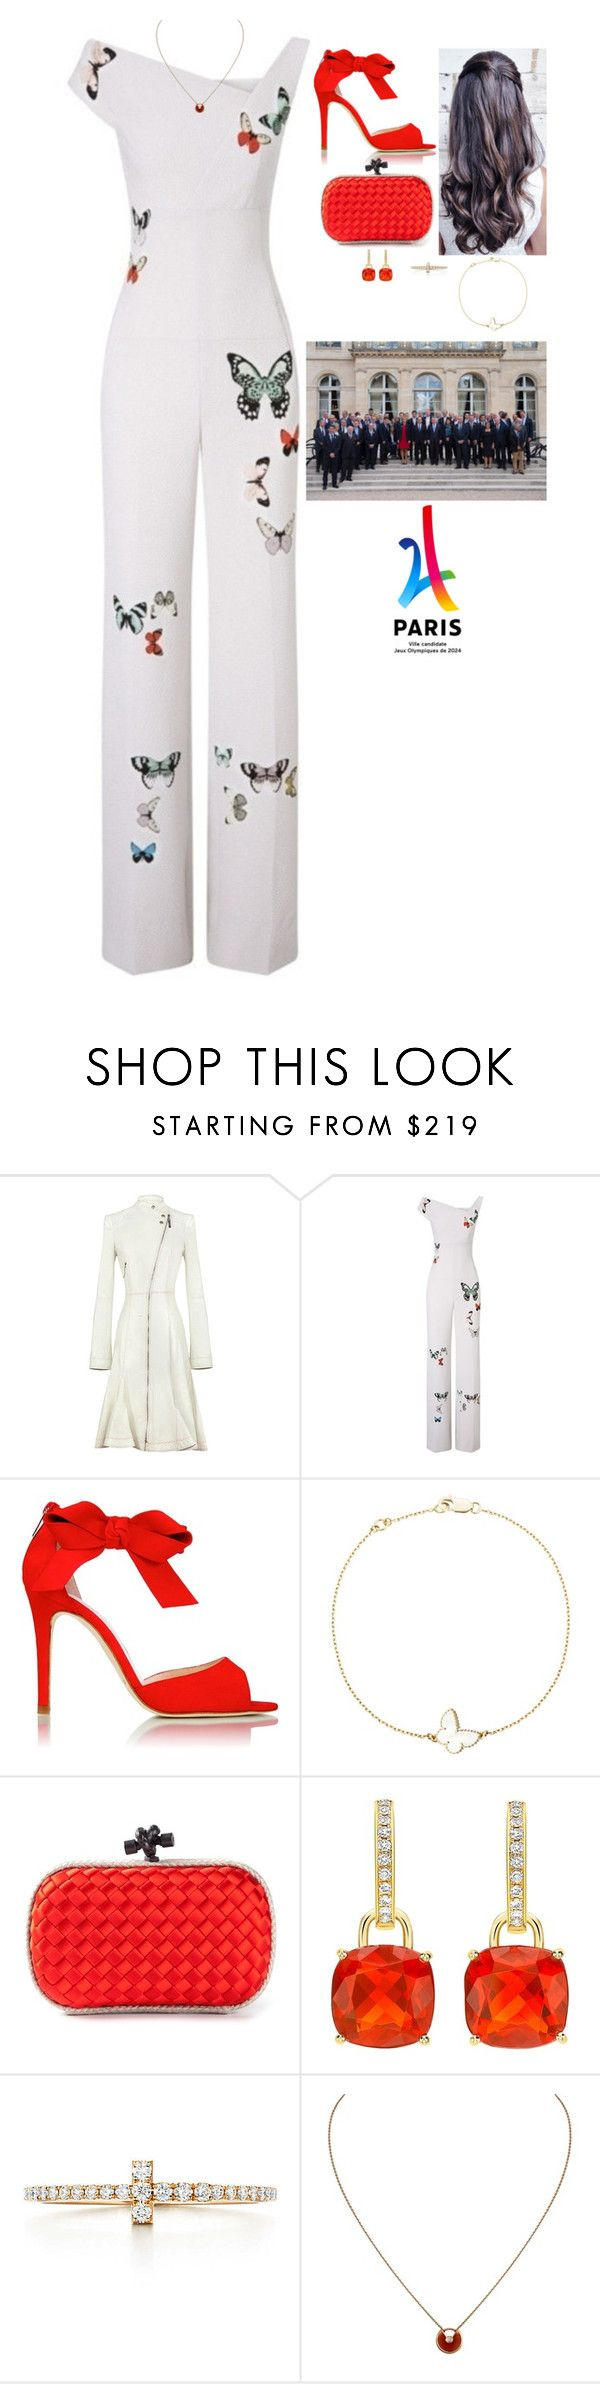 """""""Attending the 2017 presentation of the 2024 Paris Summer Olympics Third Bid Book at Élysée Palace, hosting a cocktail hour afterwards at the Château de Versailles, and flying to London"""" by fashion-royalty ❤ liked on Polyvore featuring Christian Dior, Roland Mouret, L.K.Bennett, Van Cleef & Arpels, Bottega Veneta and Cartier"""